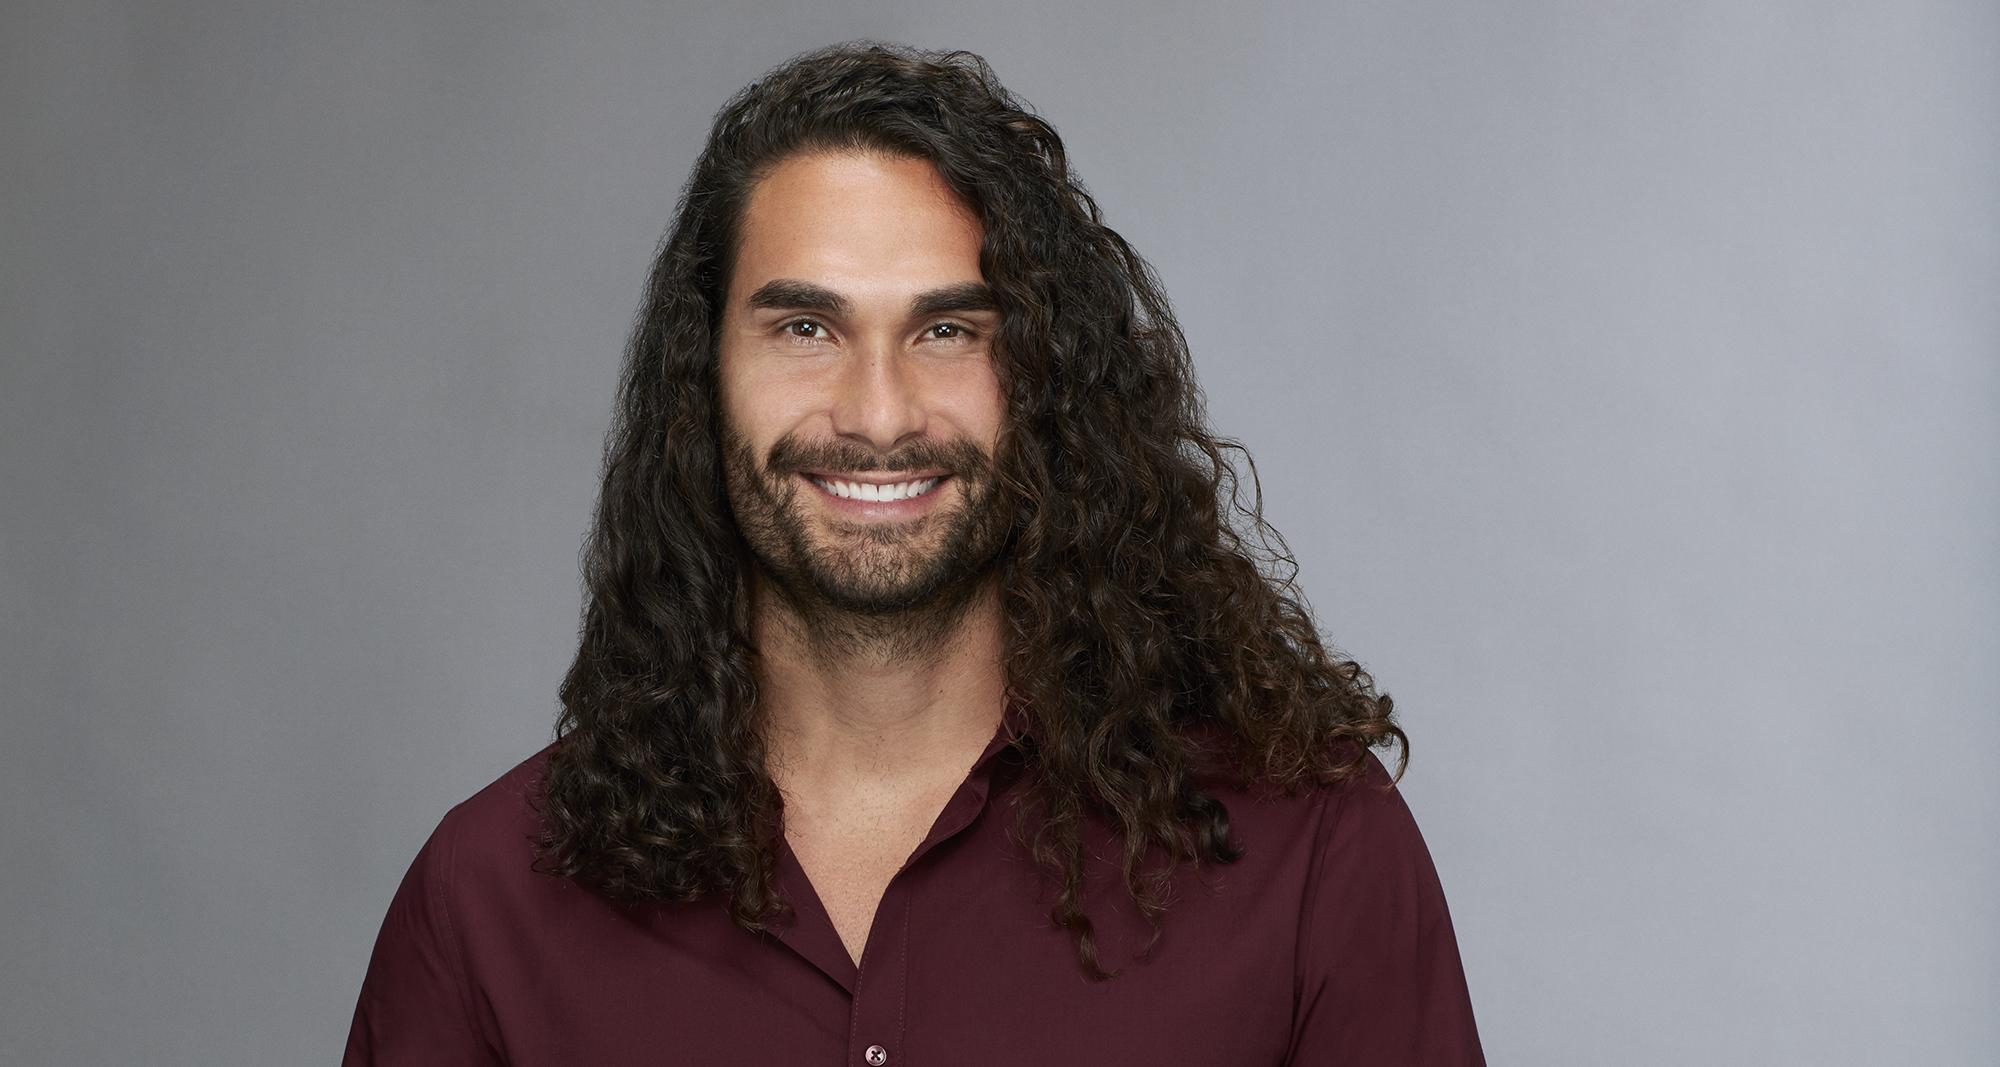 Leo from The Bachelorette 2018